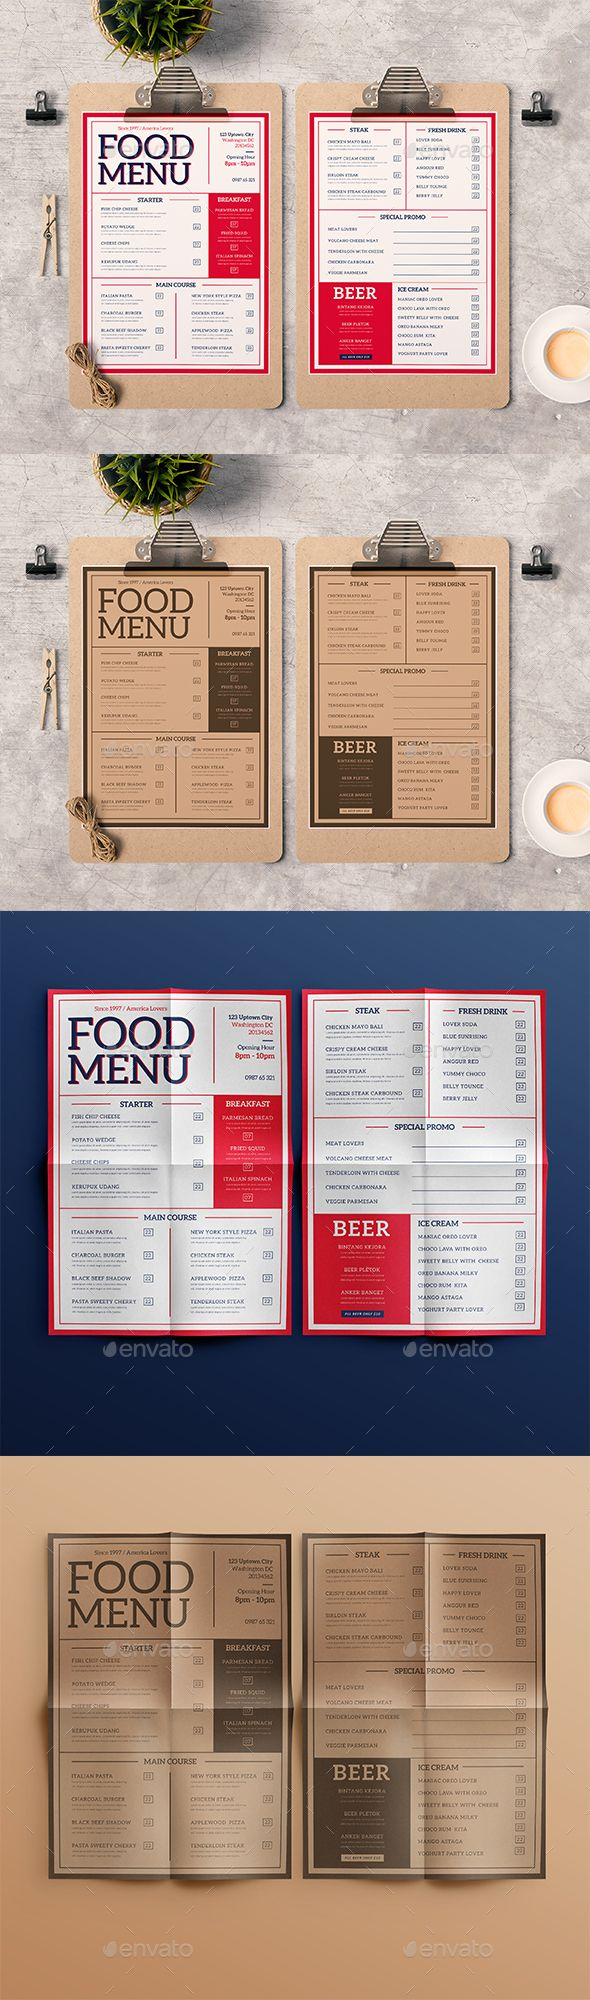 Modern Food Menu  — PSD Template #steak #creative • Download ➝ https://graphicriver.net/item/modern-food-menu/18313904?ref=pxcr